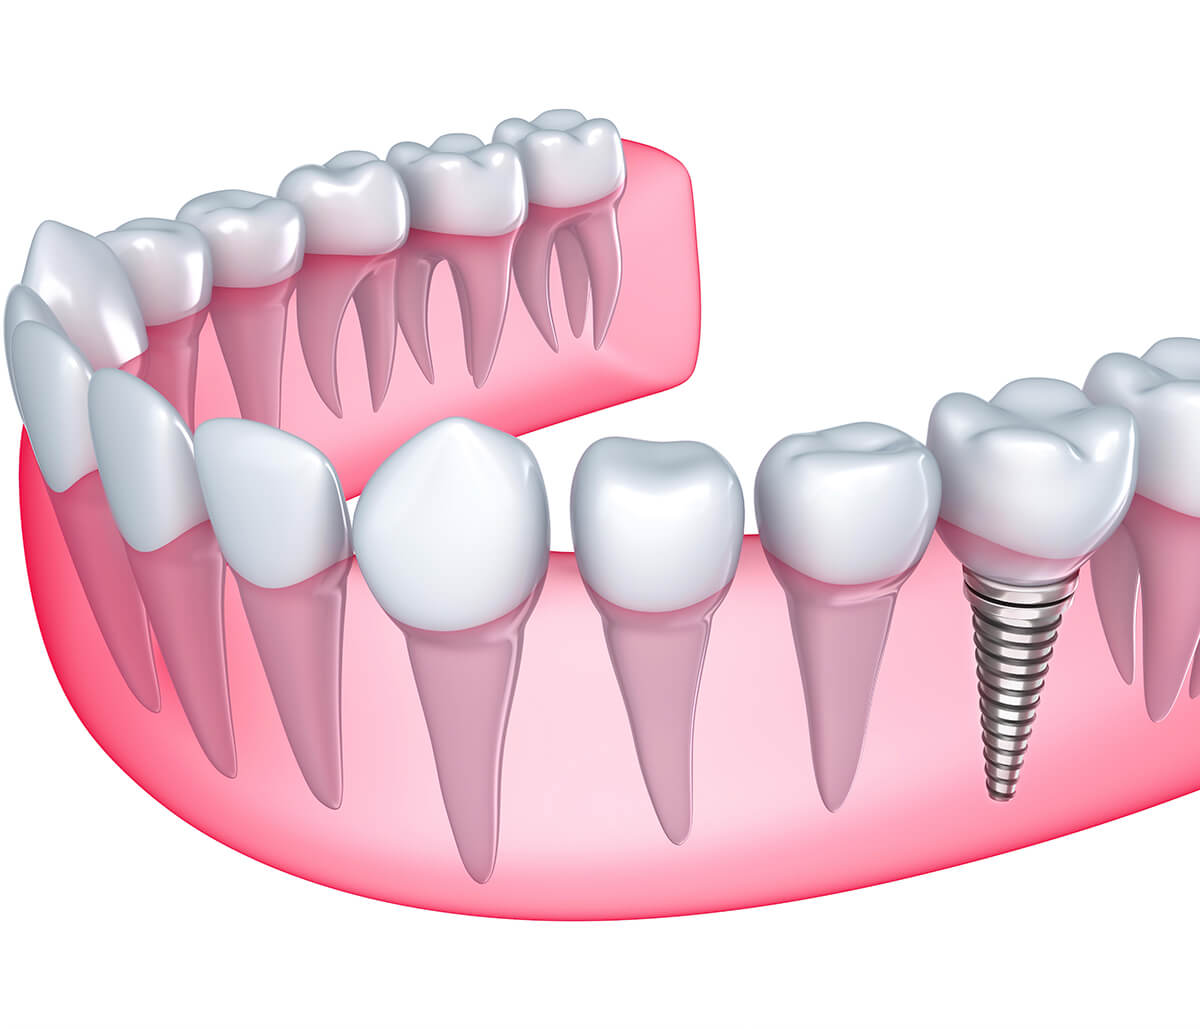 High-quality Dental Implants Offered at Dentist's Office in Costa Mesa